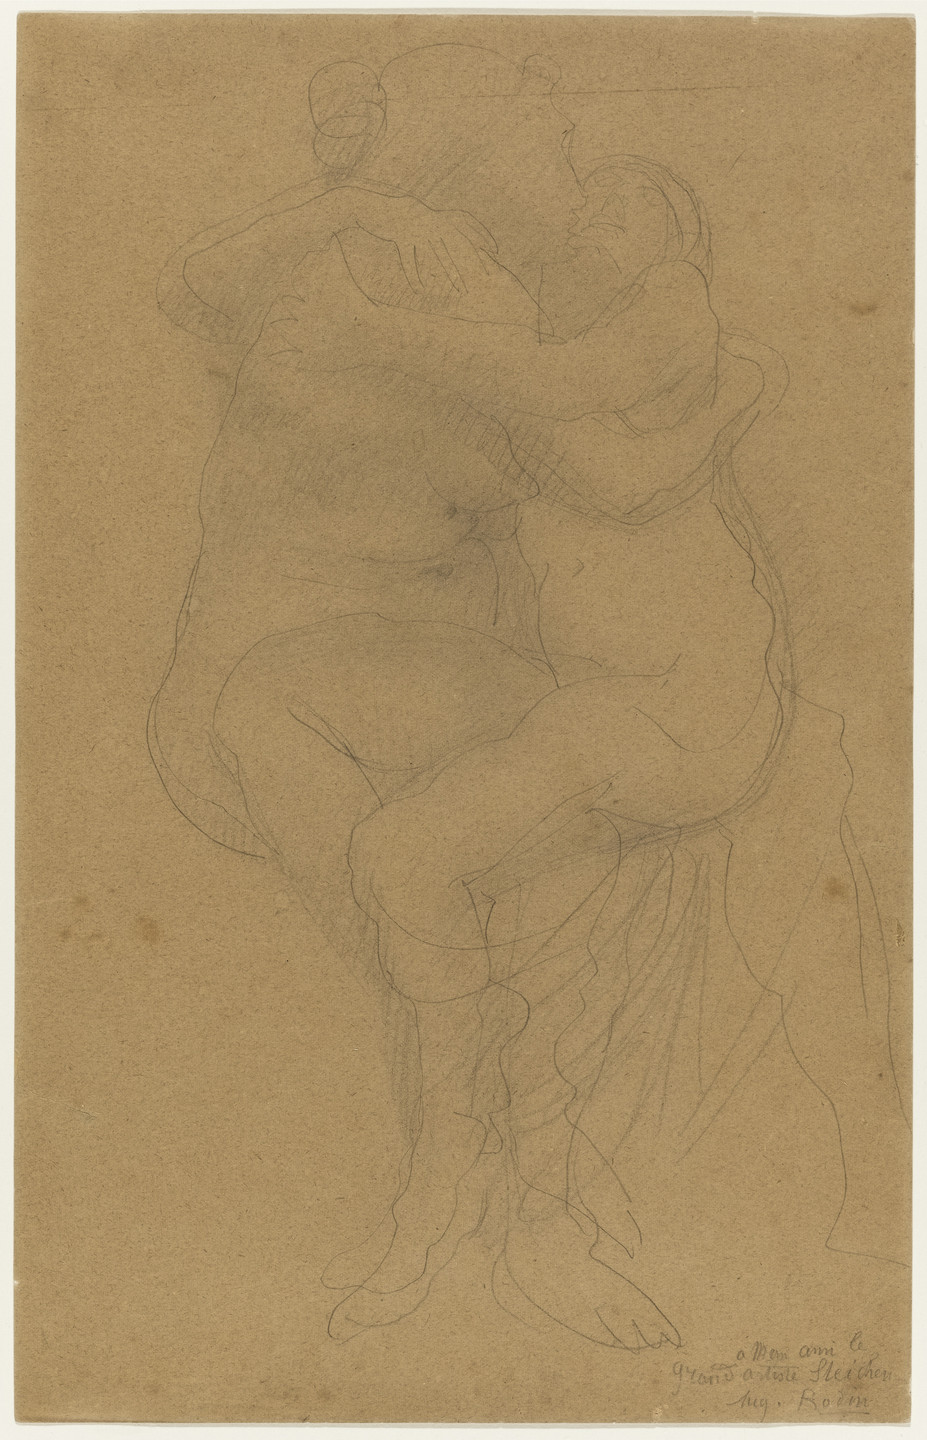 Auguste Rodin. Two Female Figures Embracing. n.d.